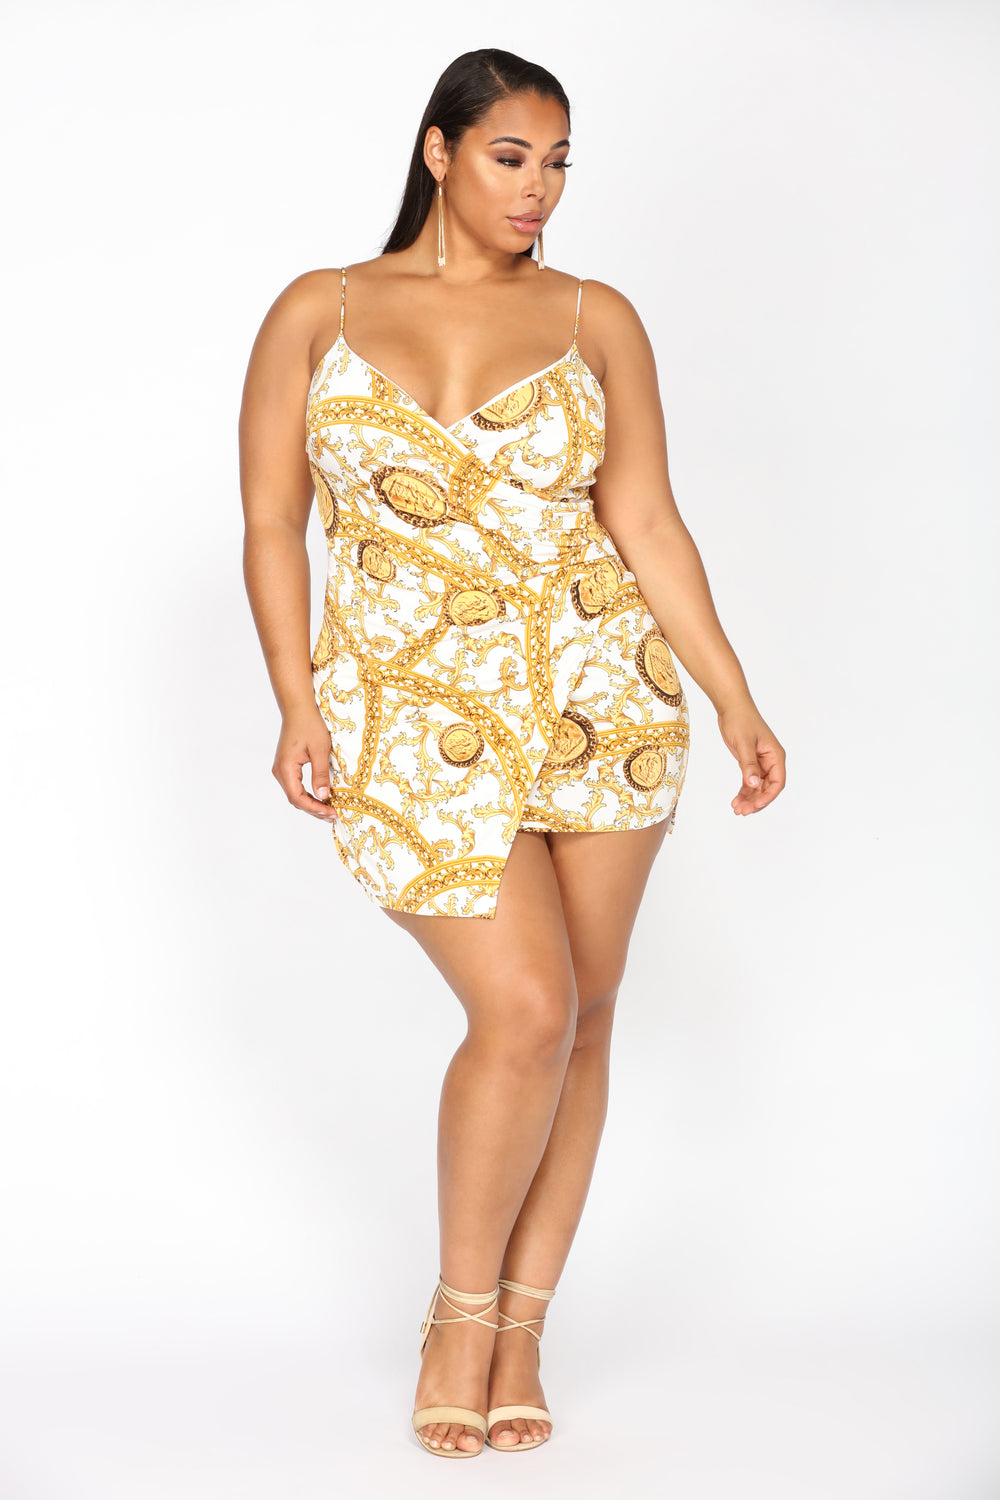 Deserve A Metal Dress - White/Gold